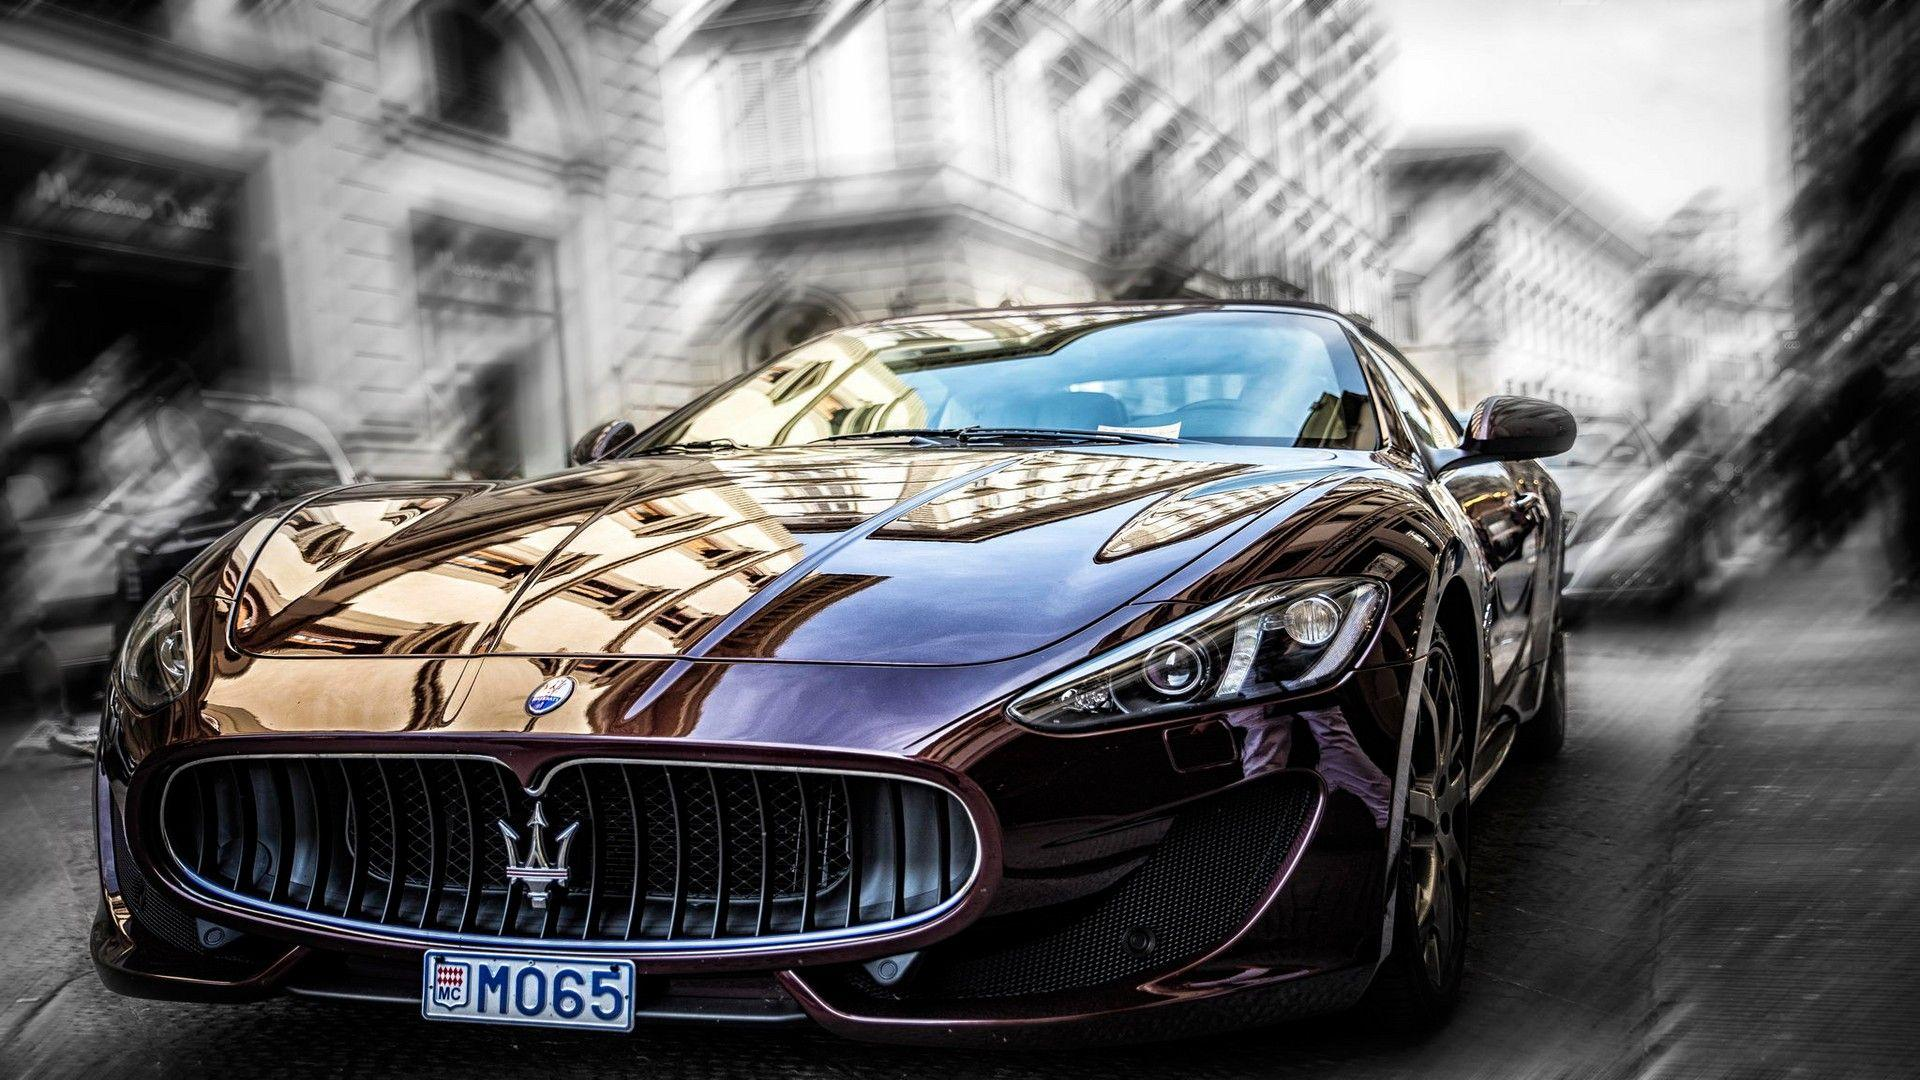 Maserati Granturismo S Mc Line Bw Cars HD Wallpapers | Wallpapers ...